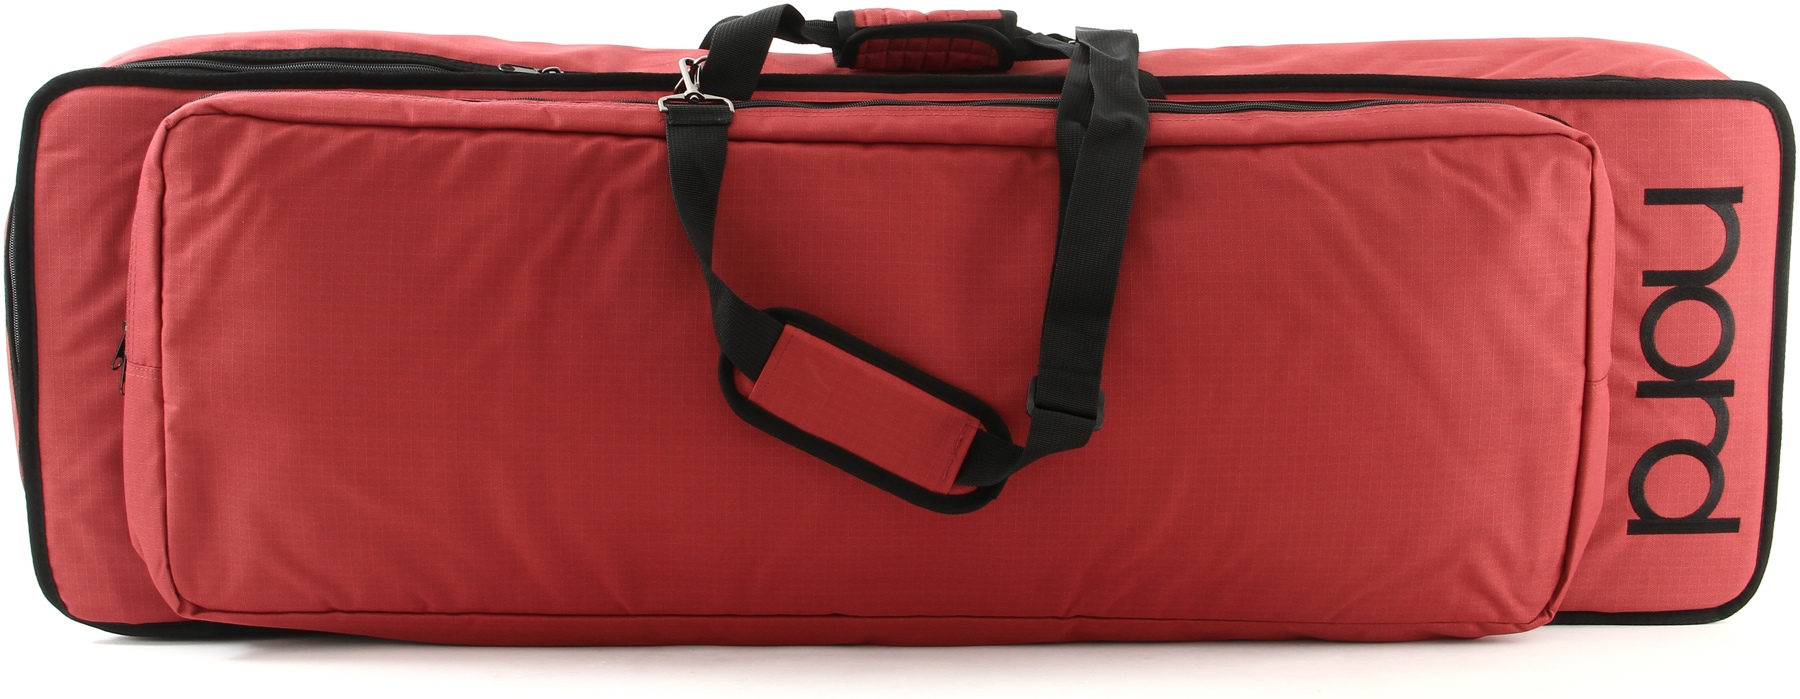 Nord User Forum - View topic - Nord Electro 3 HP Soft case